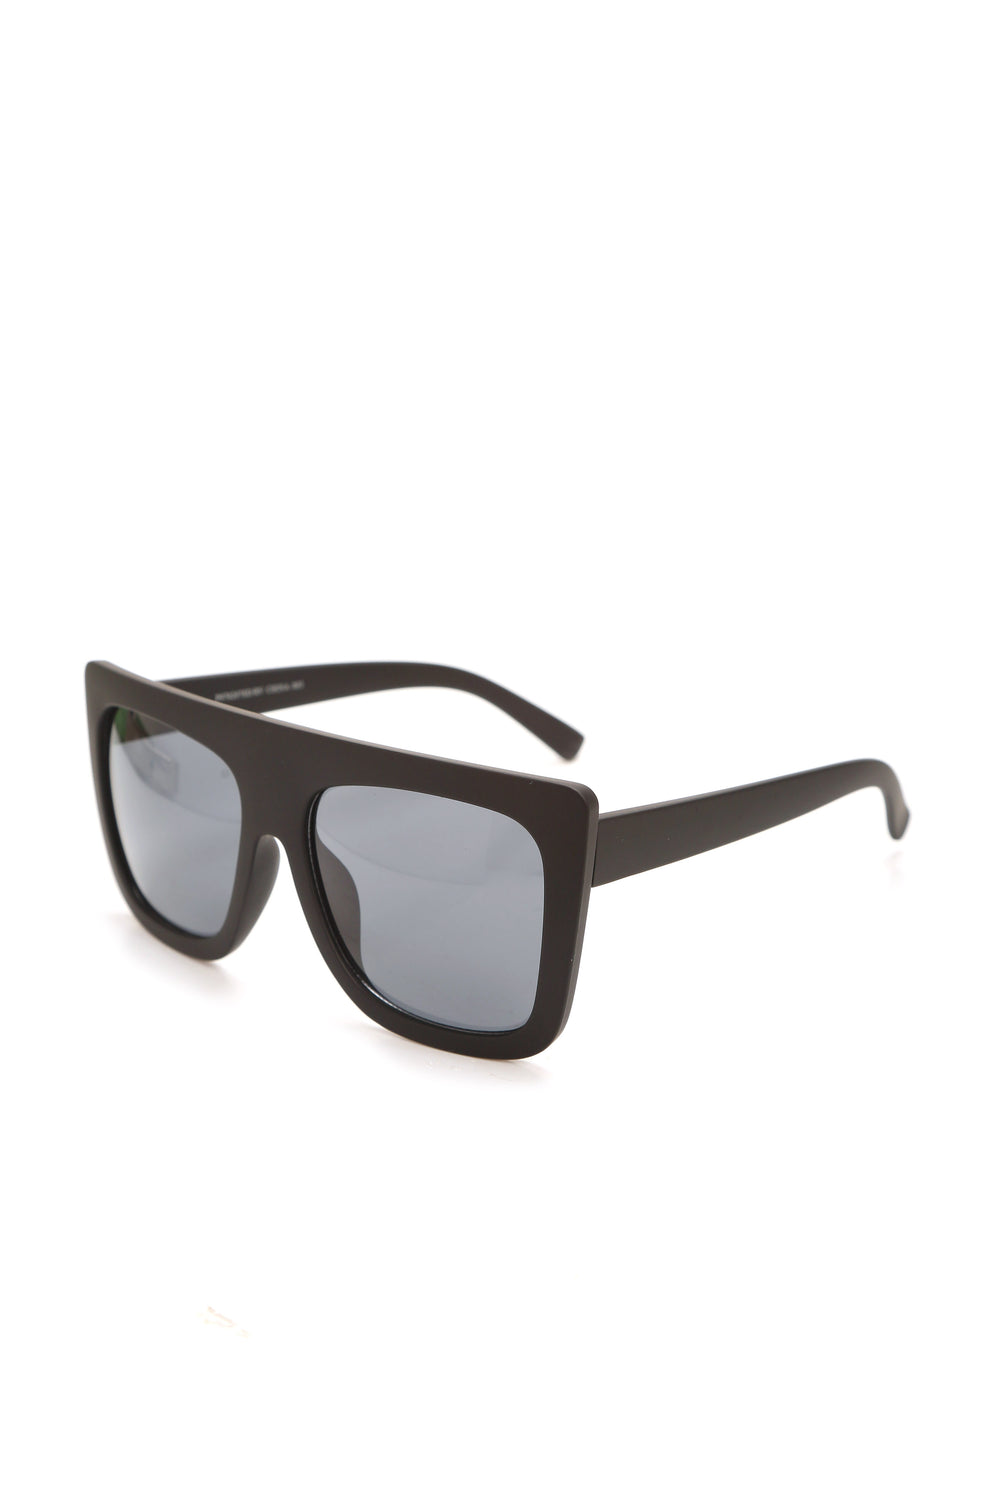 Look In The Mirror Sunglasses - Matte Black